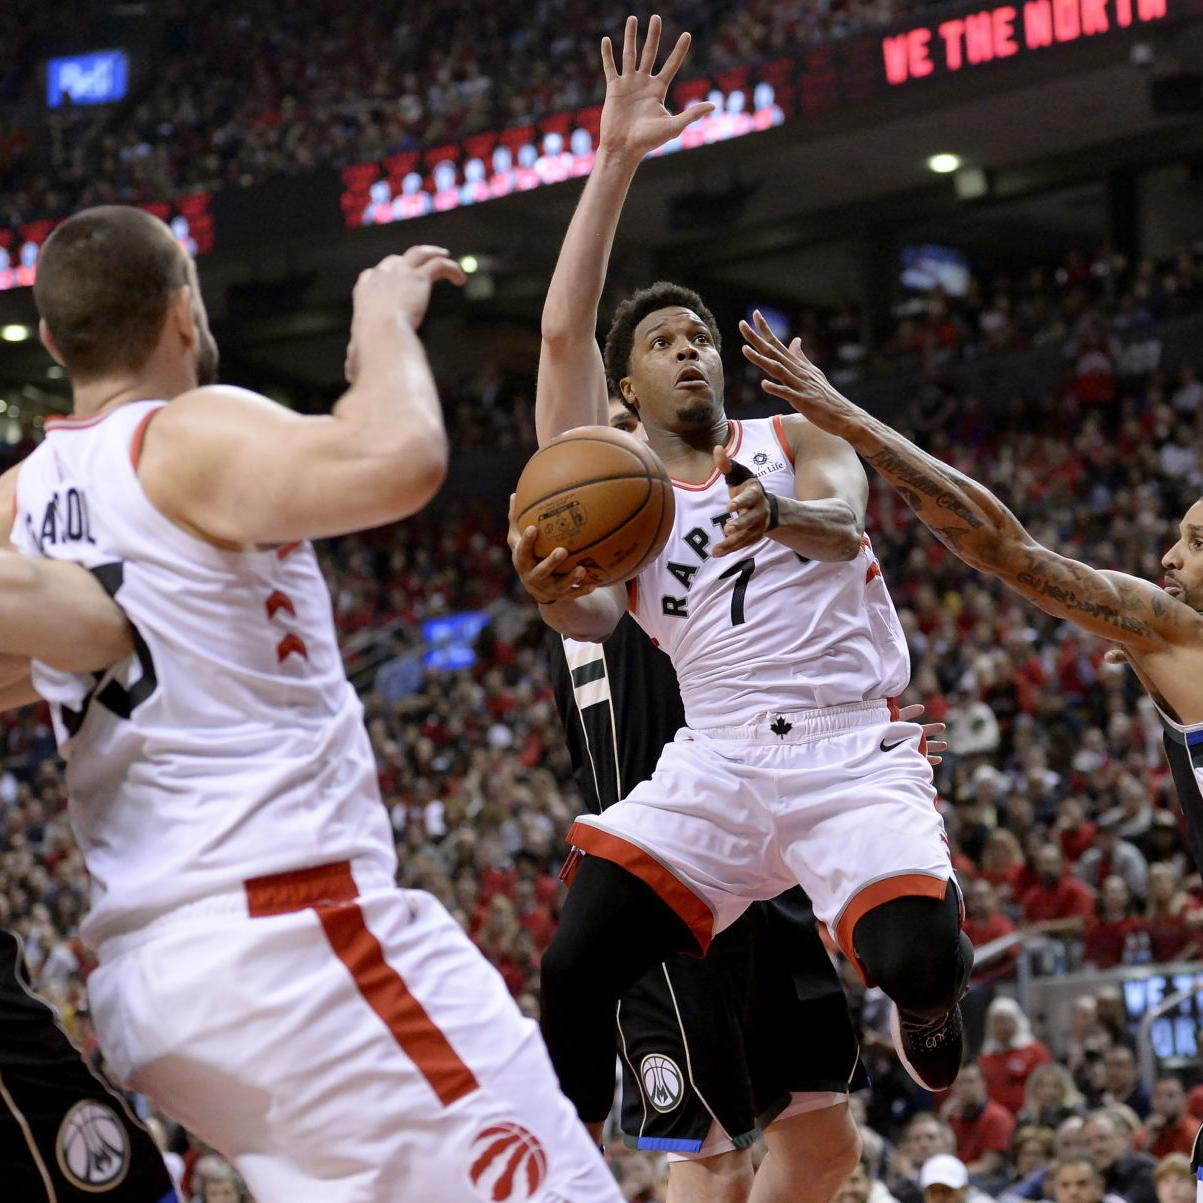 Collapse complete: Bucks drop 4 straight to Raptors to end